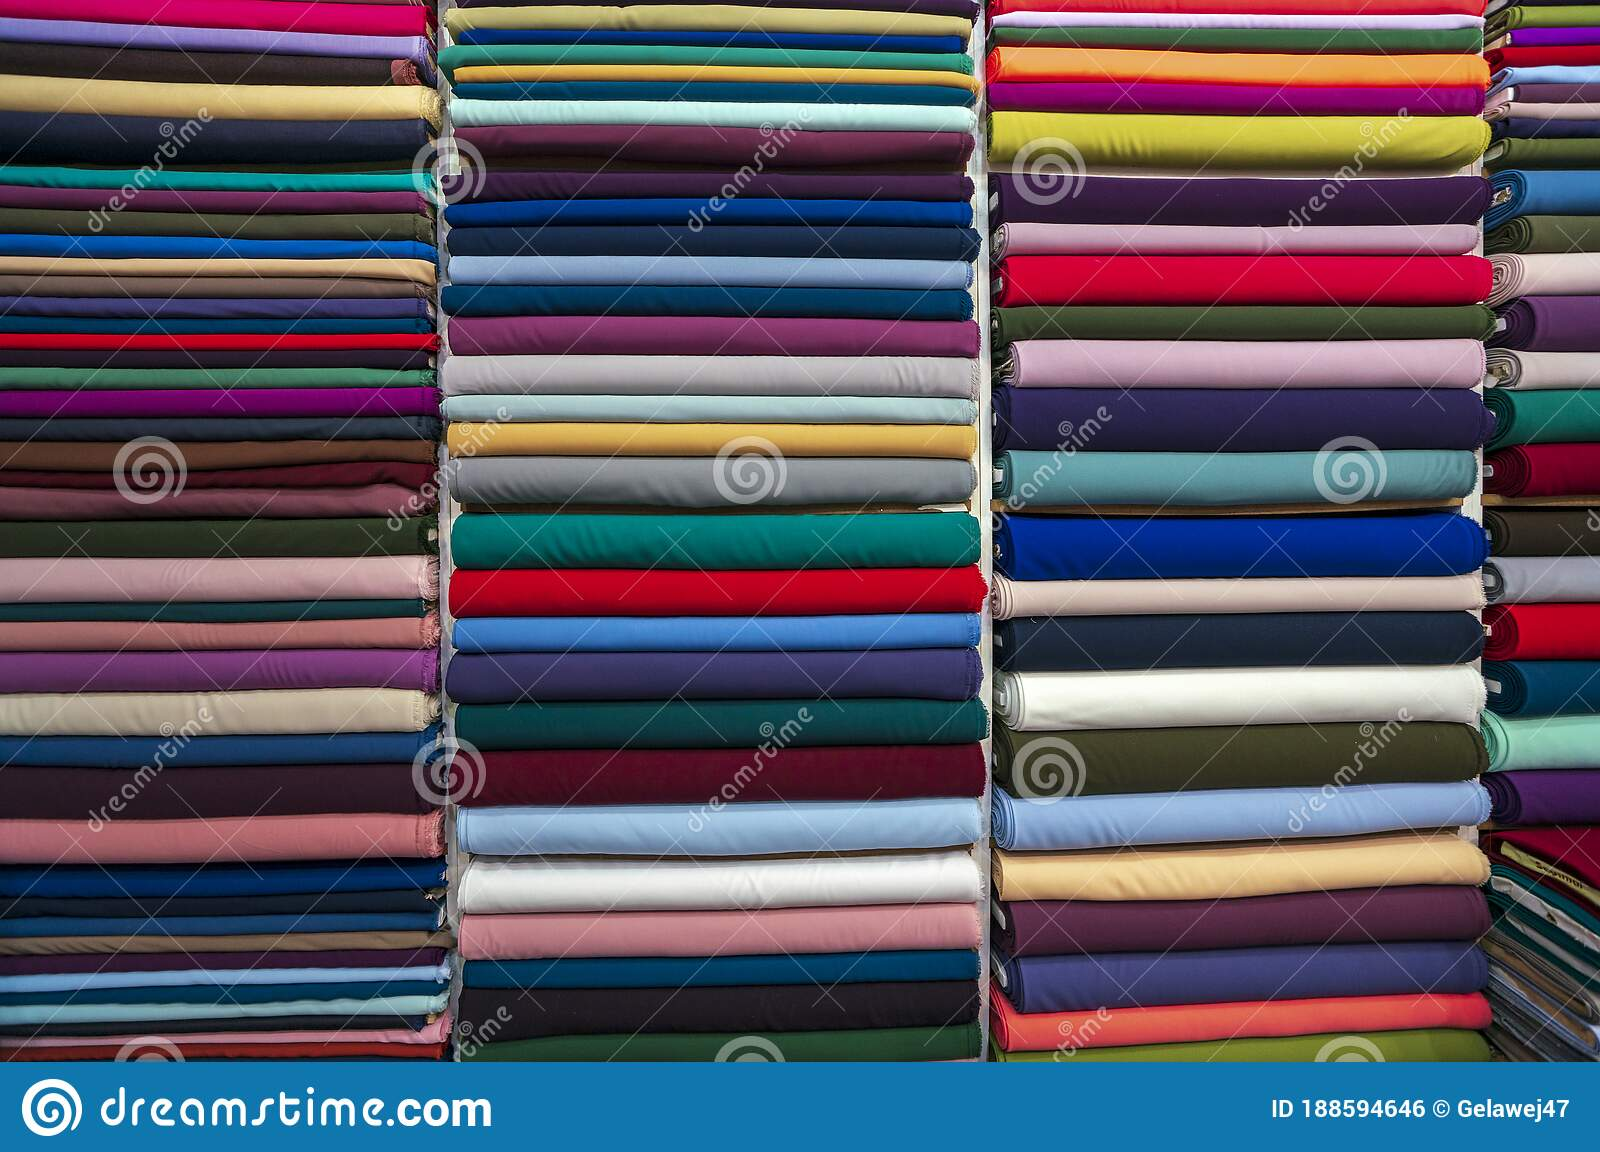 Fabric Industry Textile Store Colorful Fabric And Silk Fabric Background Cotton Fabrics In Roll Different Colors And Texture Stock Photo Image Of Bazaar Decoration 188594646